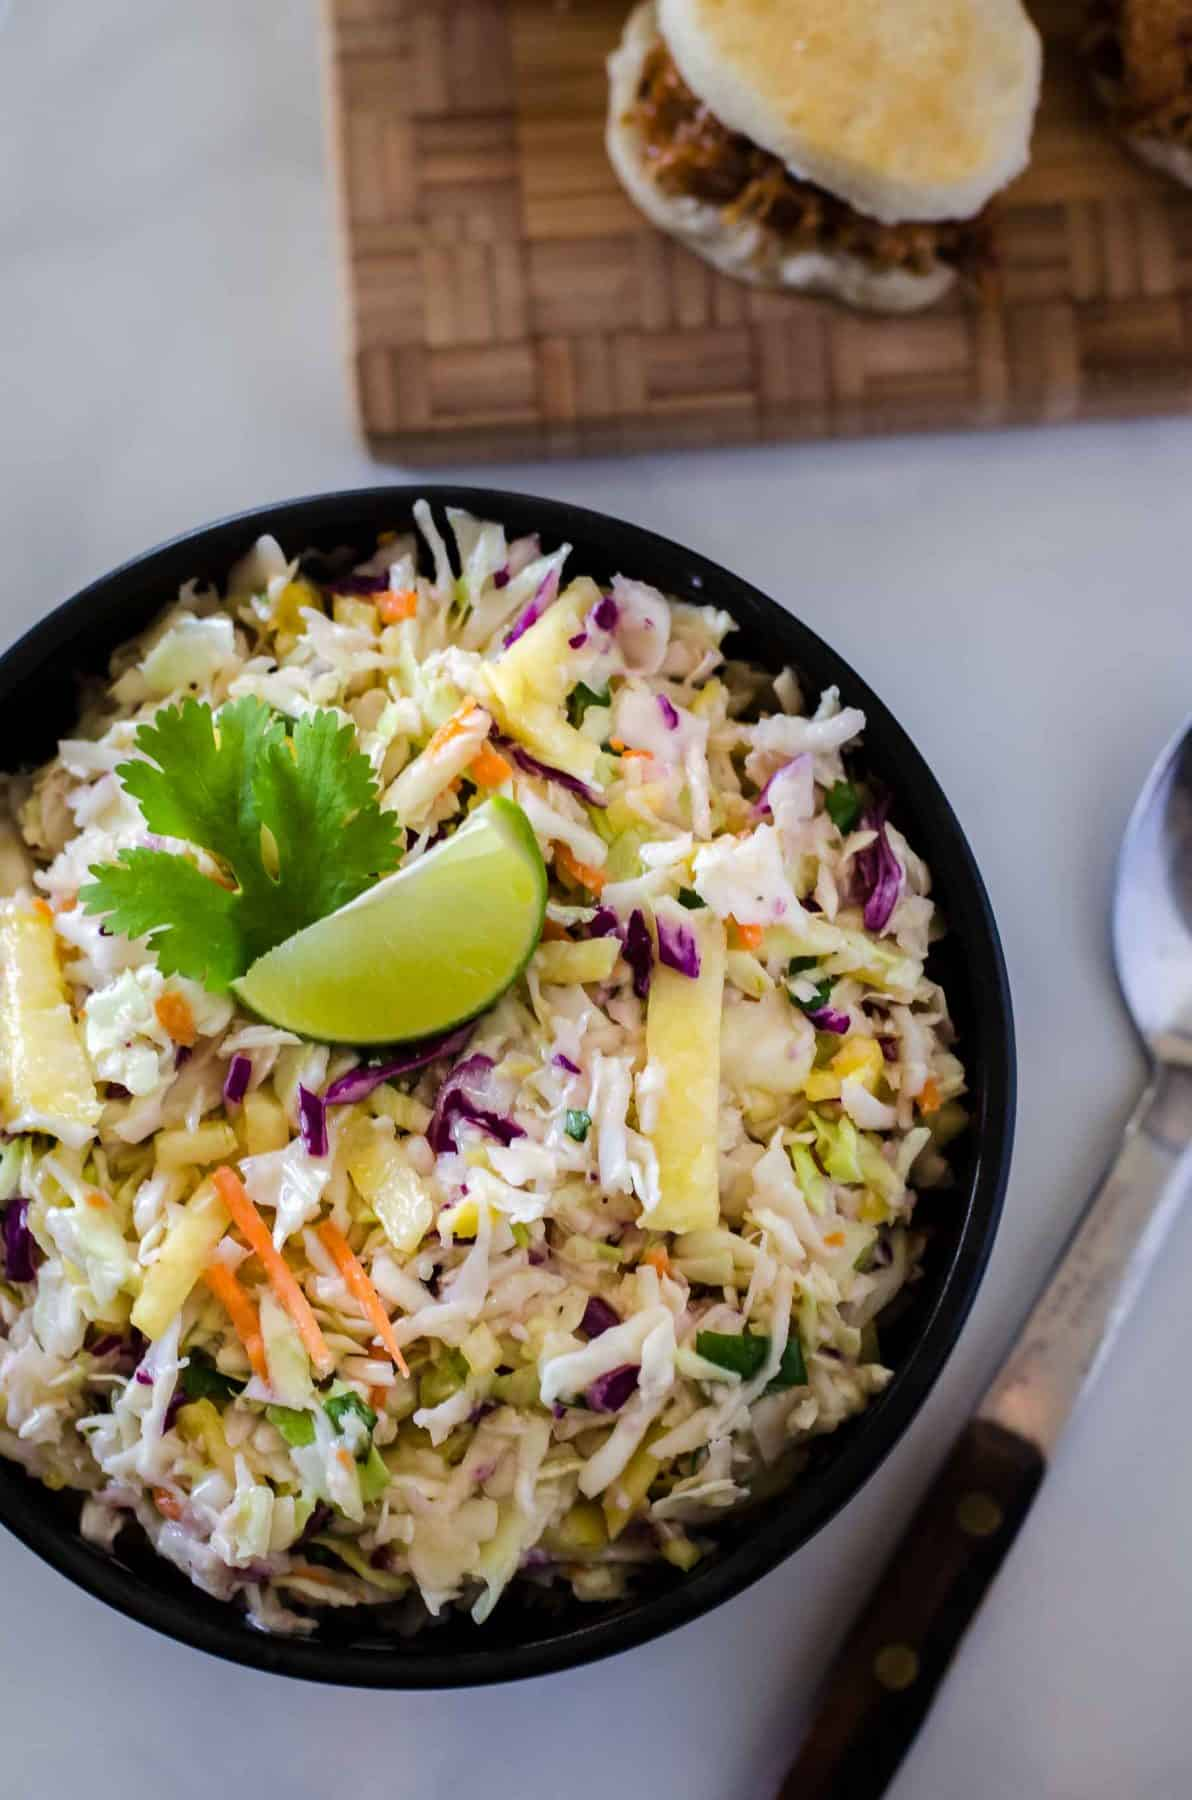 Bring the best dressed slaw to your next BBQ! This fast & easy Fresh Pineapple Coleslaw adds a little tropical flair to the otherwise ordinary side, making it a great topping for everything from sliders to hot dogs!